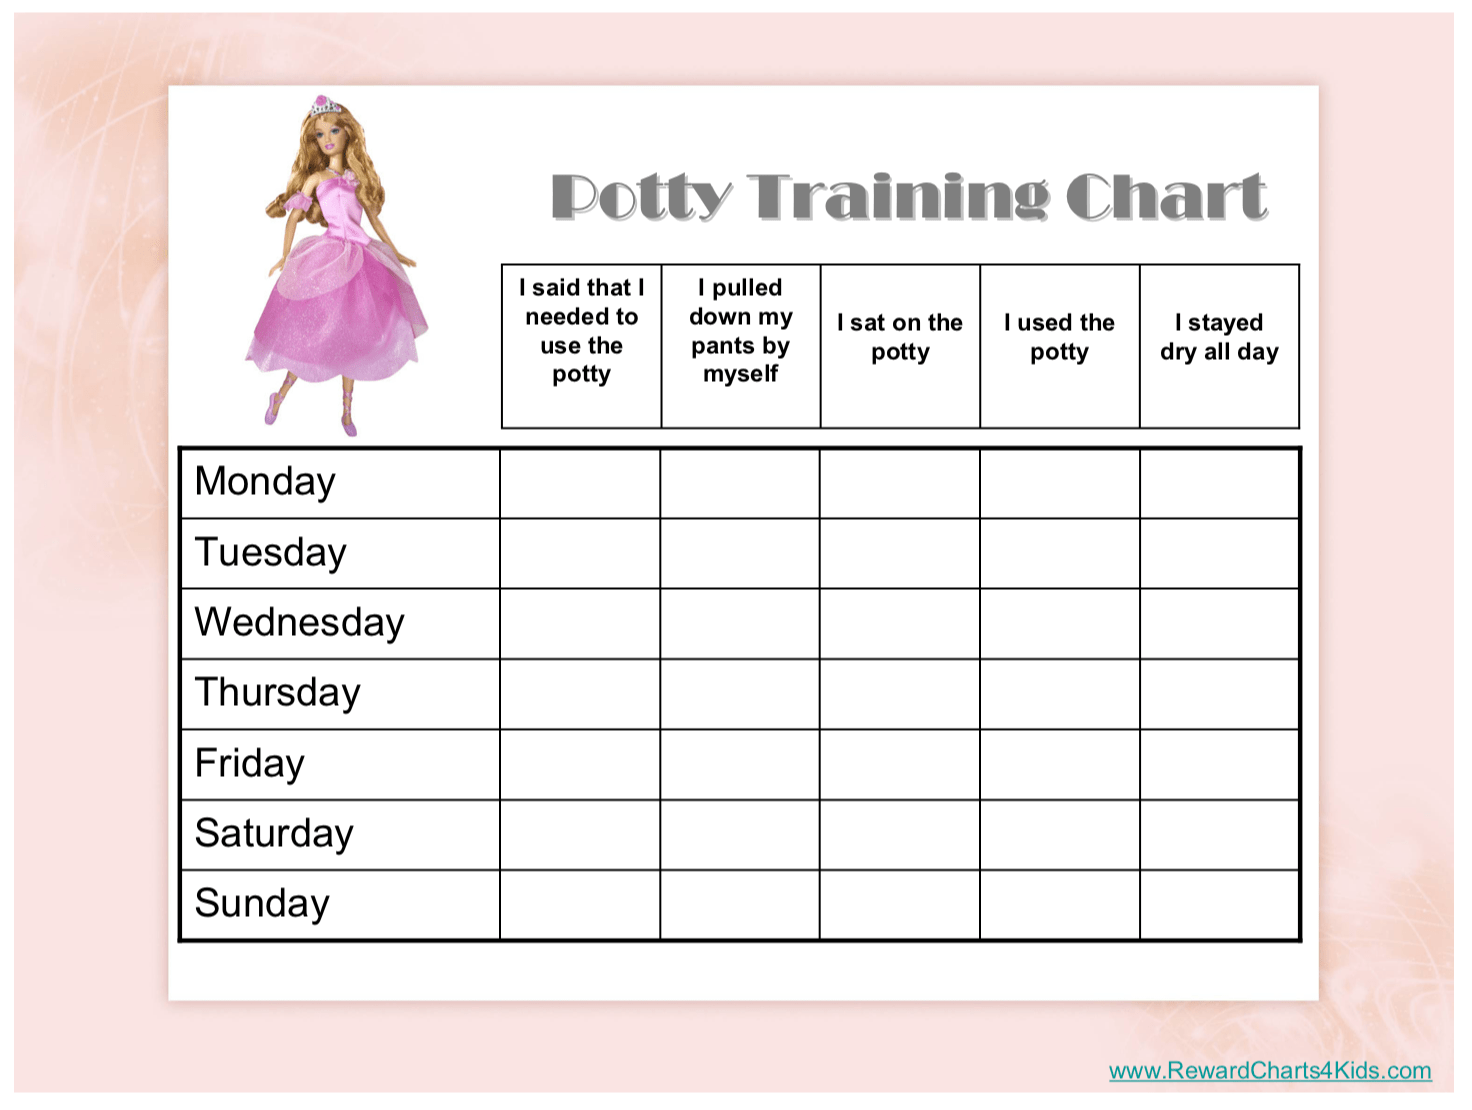 photograph regarding Free Printable Potty Training Charts identified as Cost-free Printable Potty Working out Charts - Geared up toward Potty!